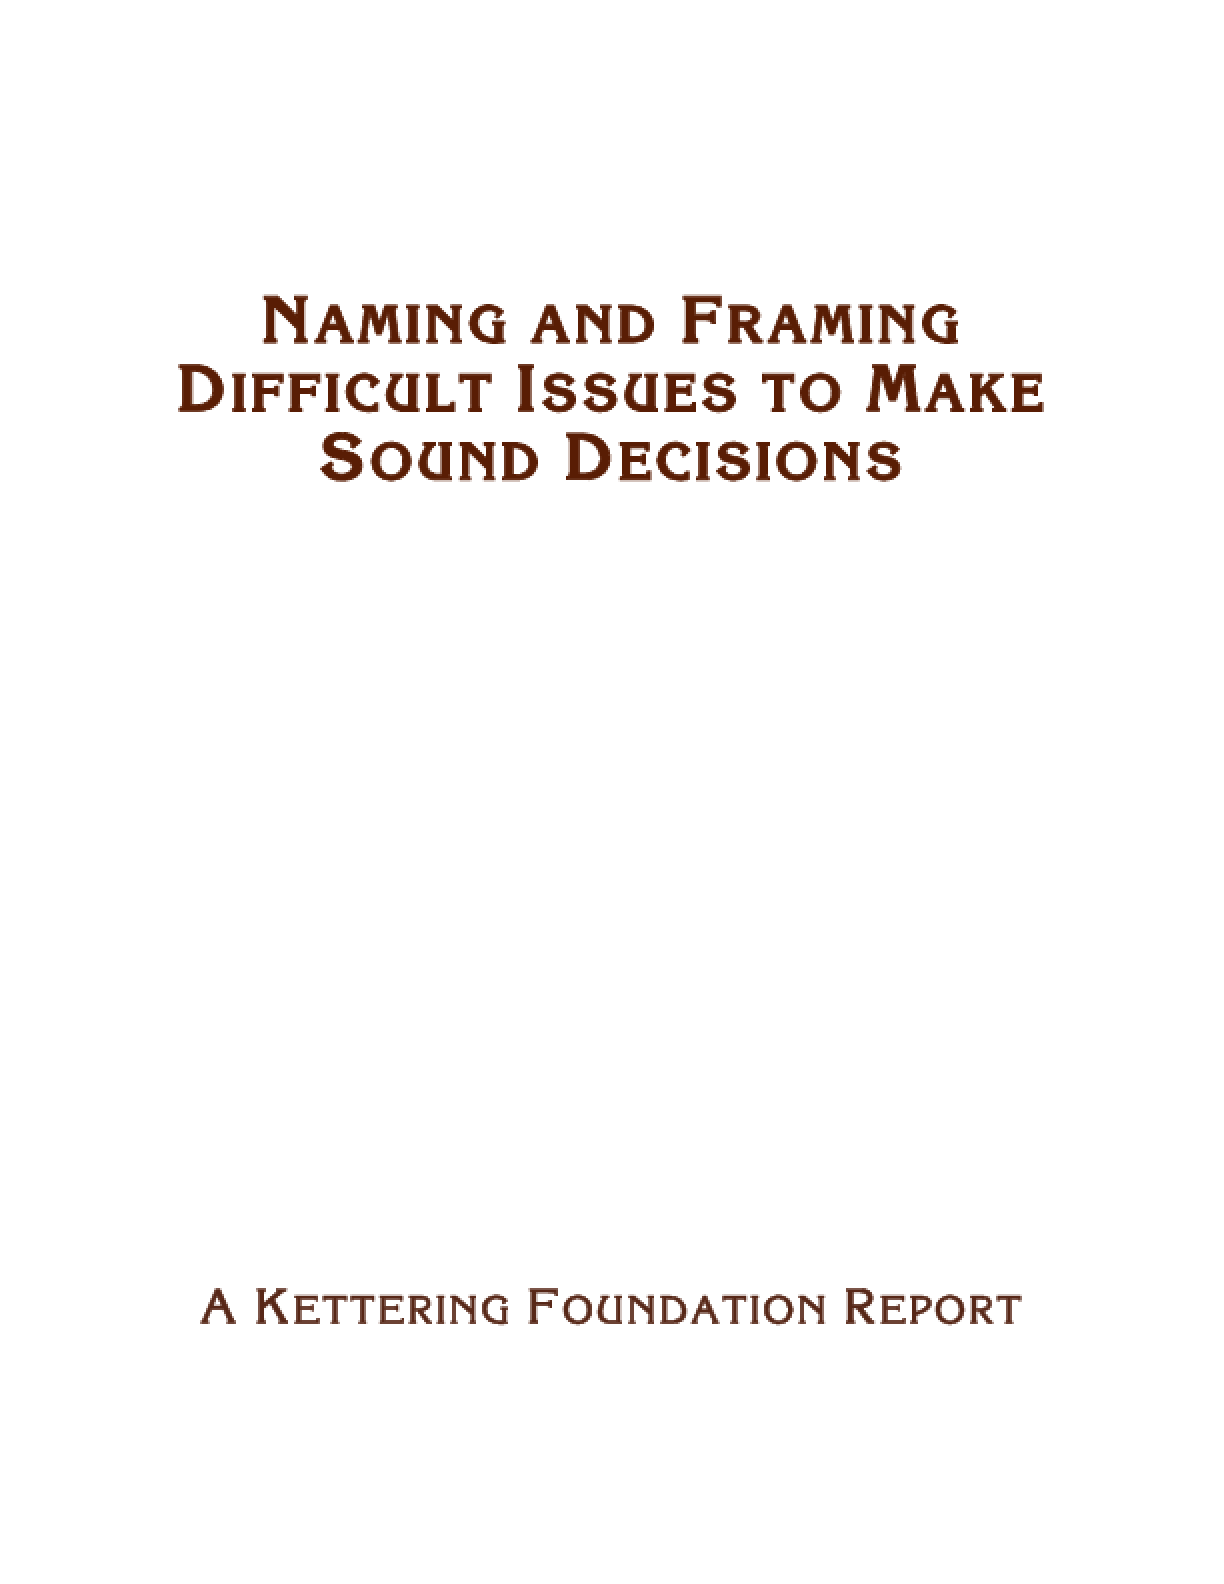 Naming and Framing Difficult Issues to Make Sound Decisions